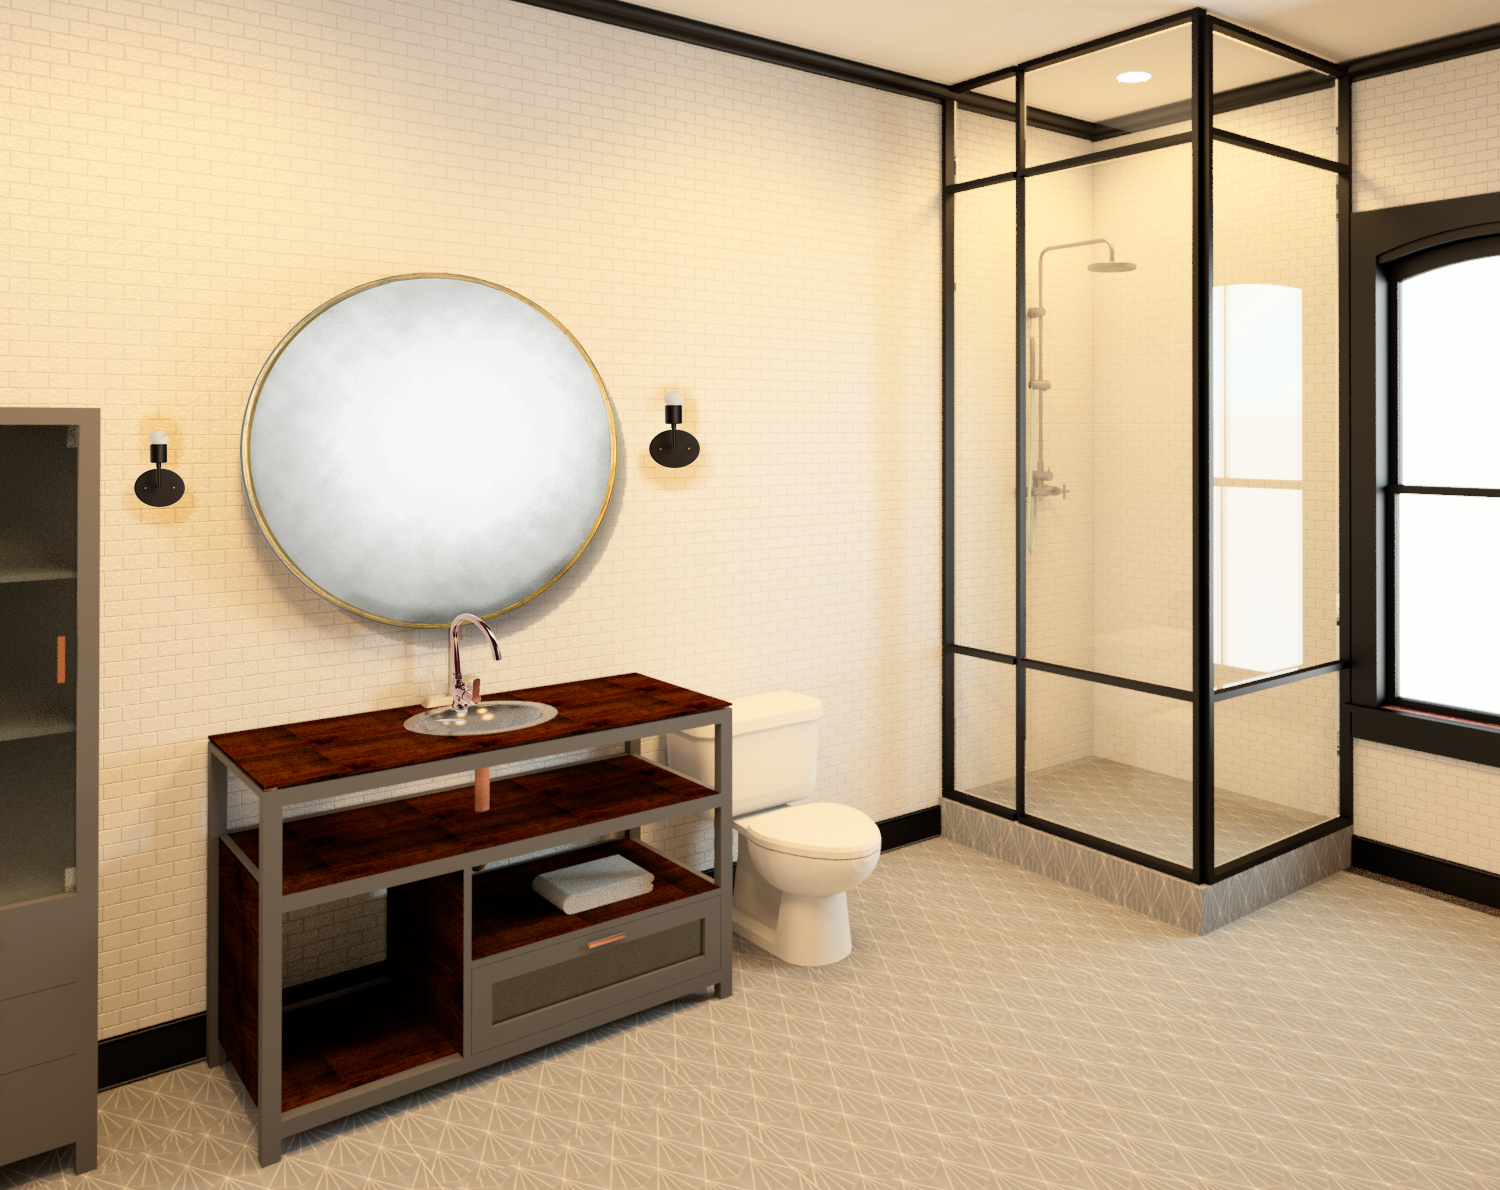 112 W. Lewis - residential unit bathroom rendering